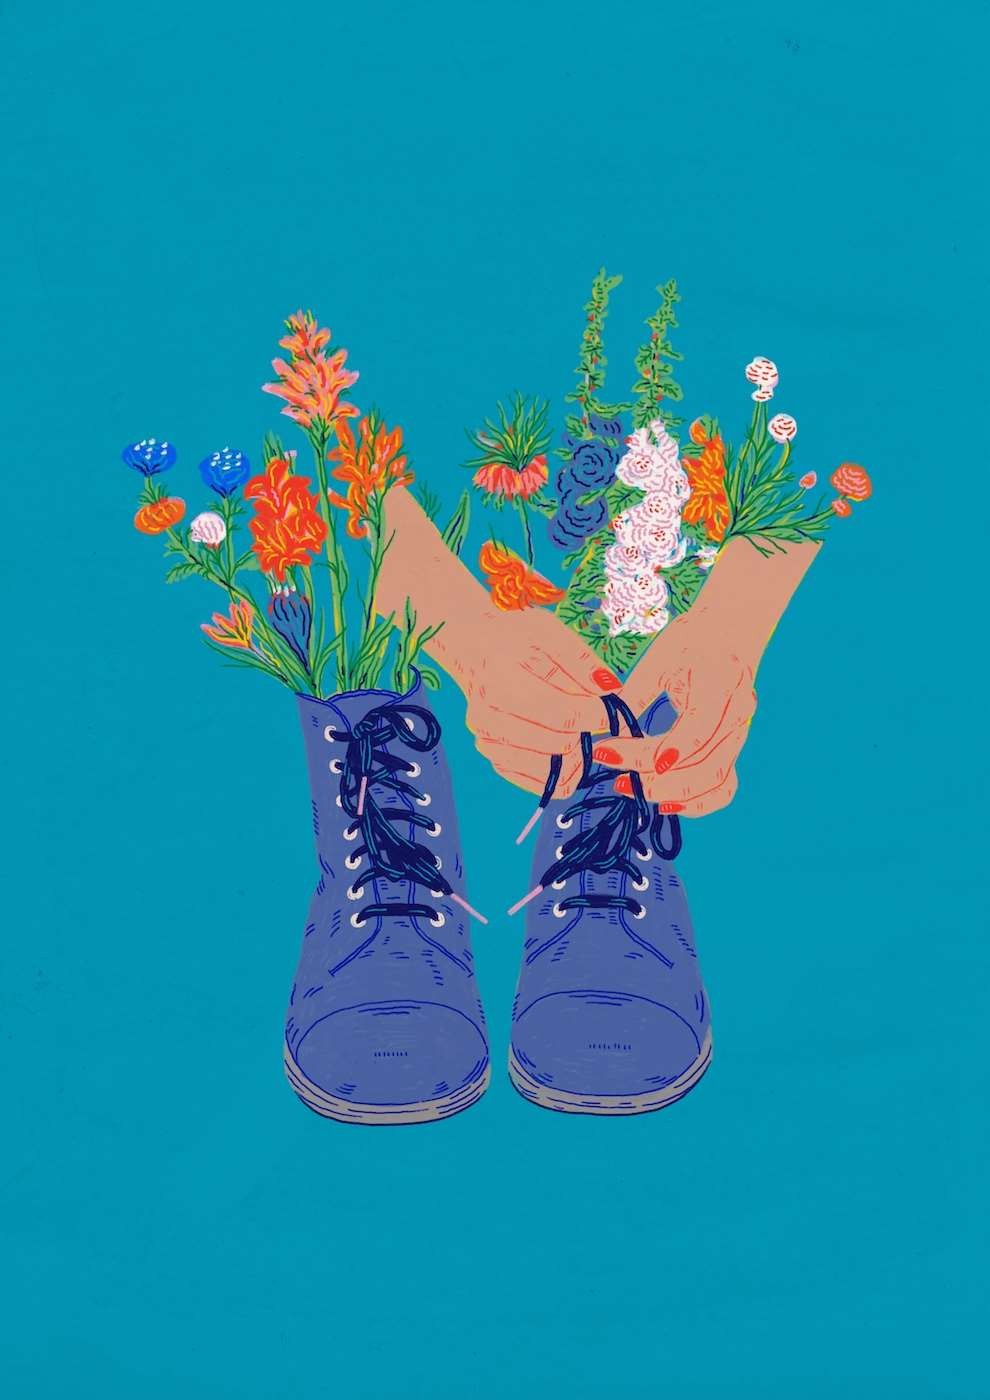 Anna Higgie, Hand drawn illustration of shoes with flowers in them